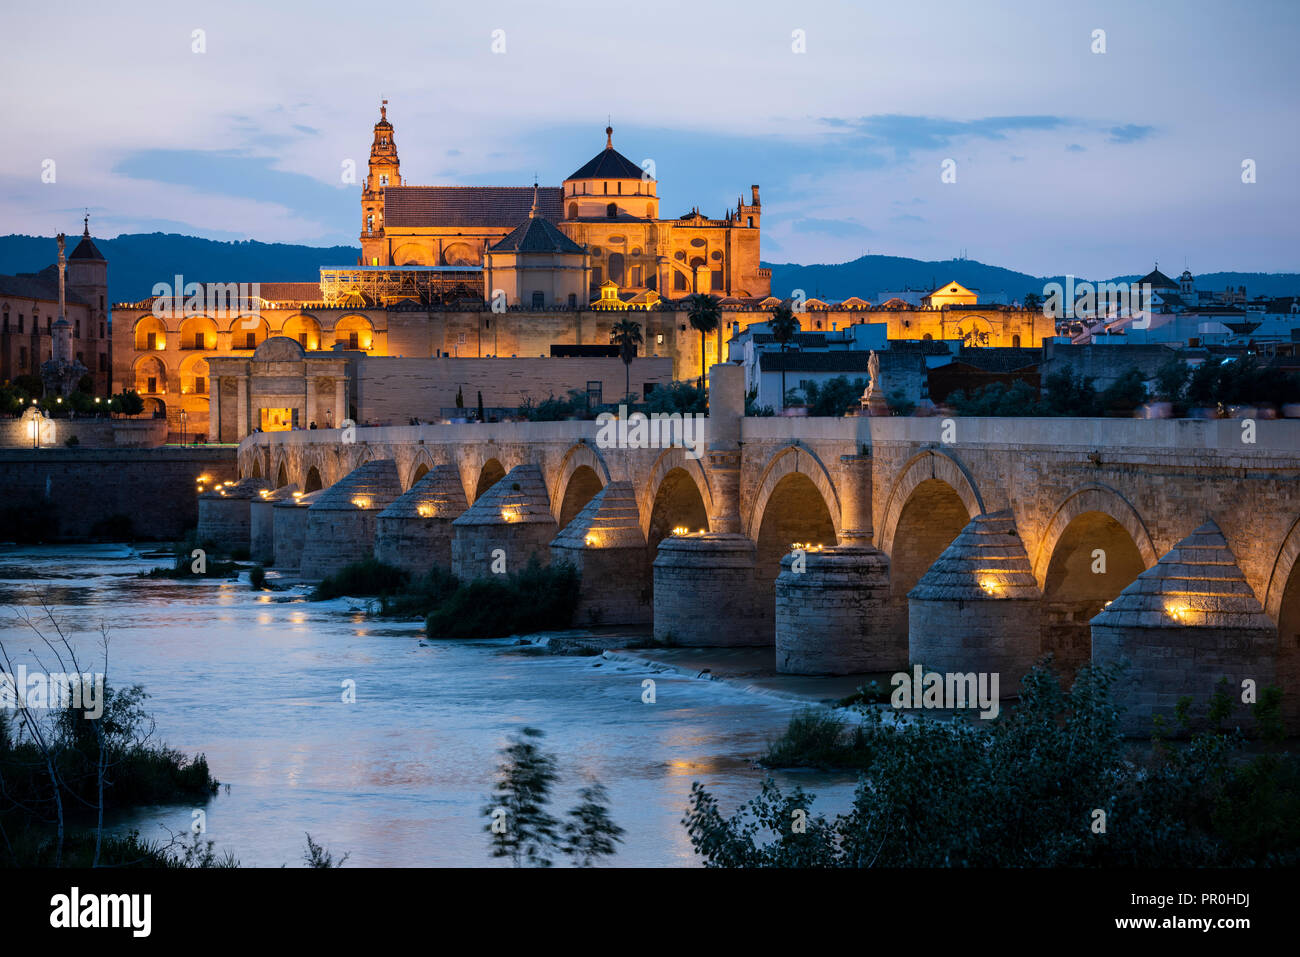 The Cathedral and Great Mosque of Cordoba (Mezquita) and Roman Bridge at twilight, UNESCO World Heritage Site, Cordoba, Andalucia, Spain, Europe - Stock Image